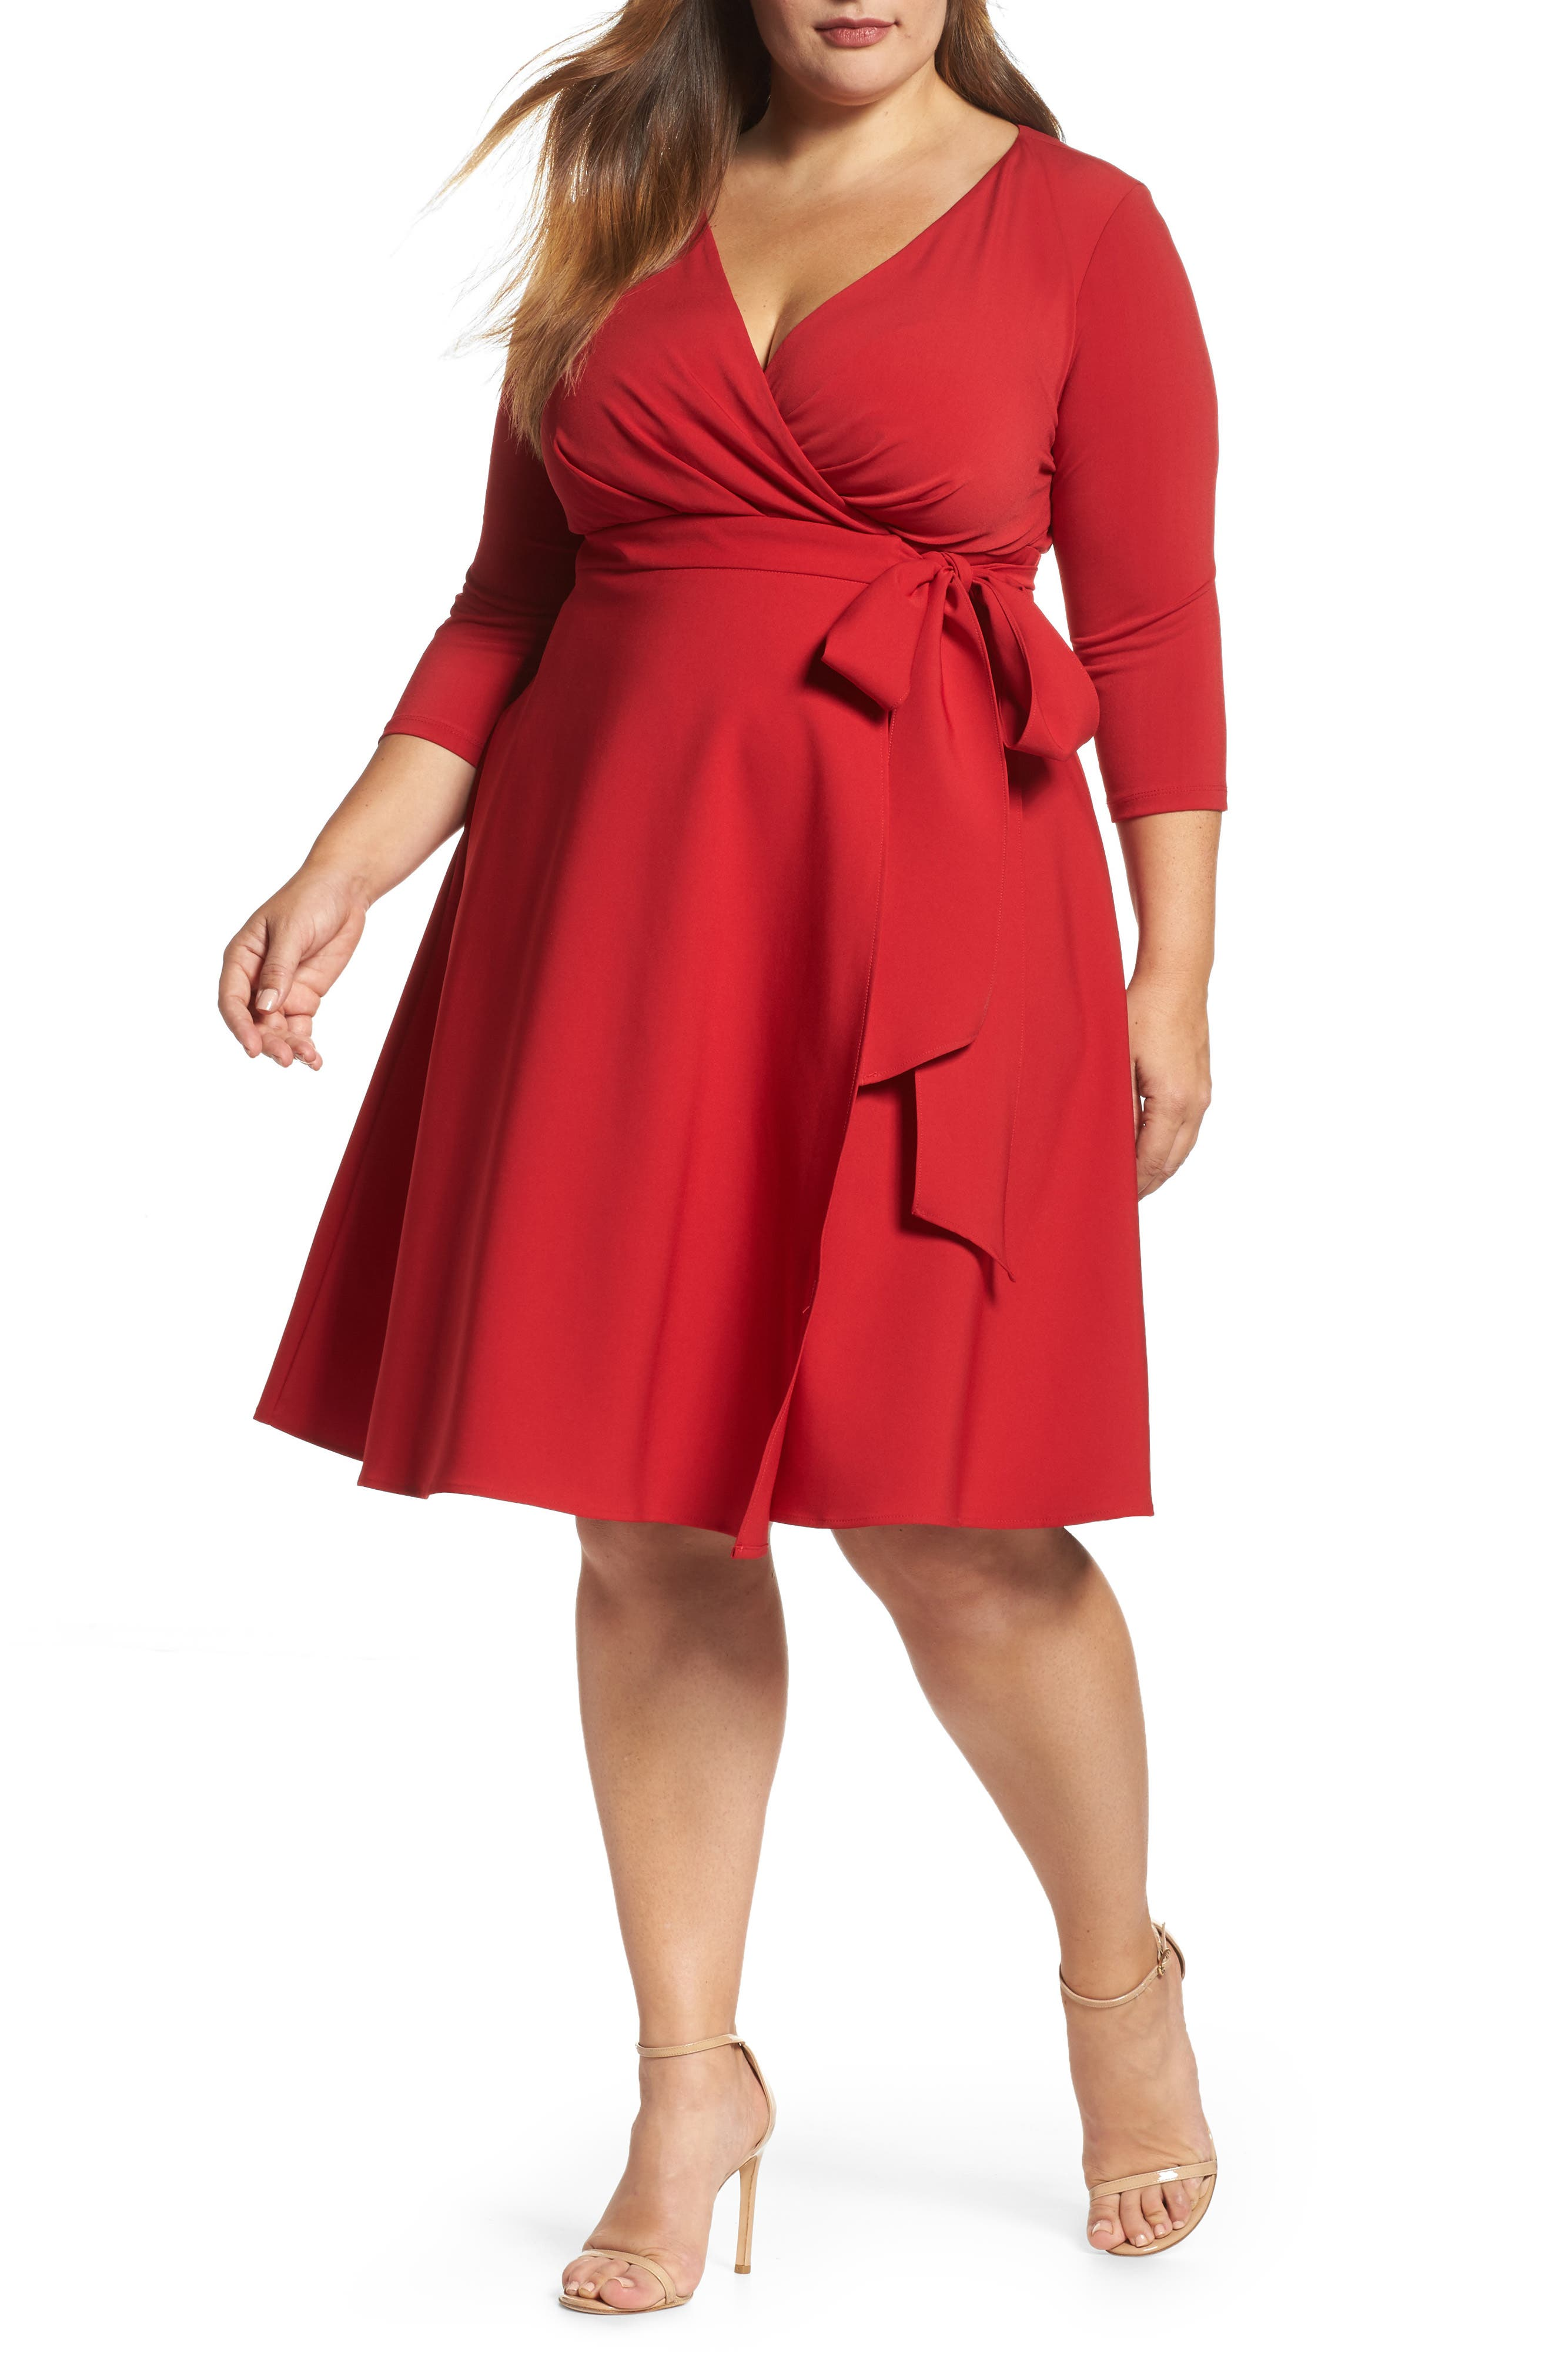 Alternate Image 1 Selected - Sangria Fit & Flare Wrap Dress (Plus Size)